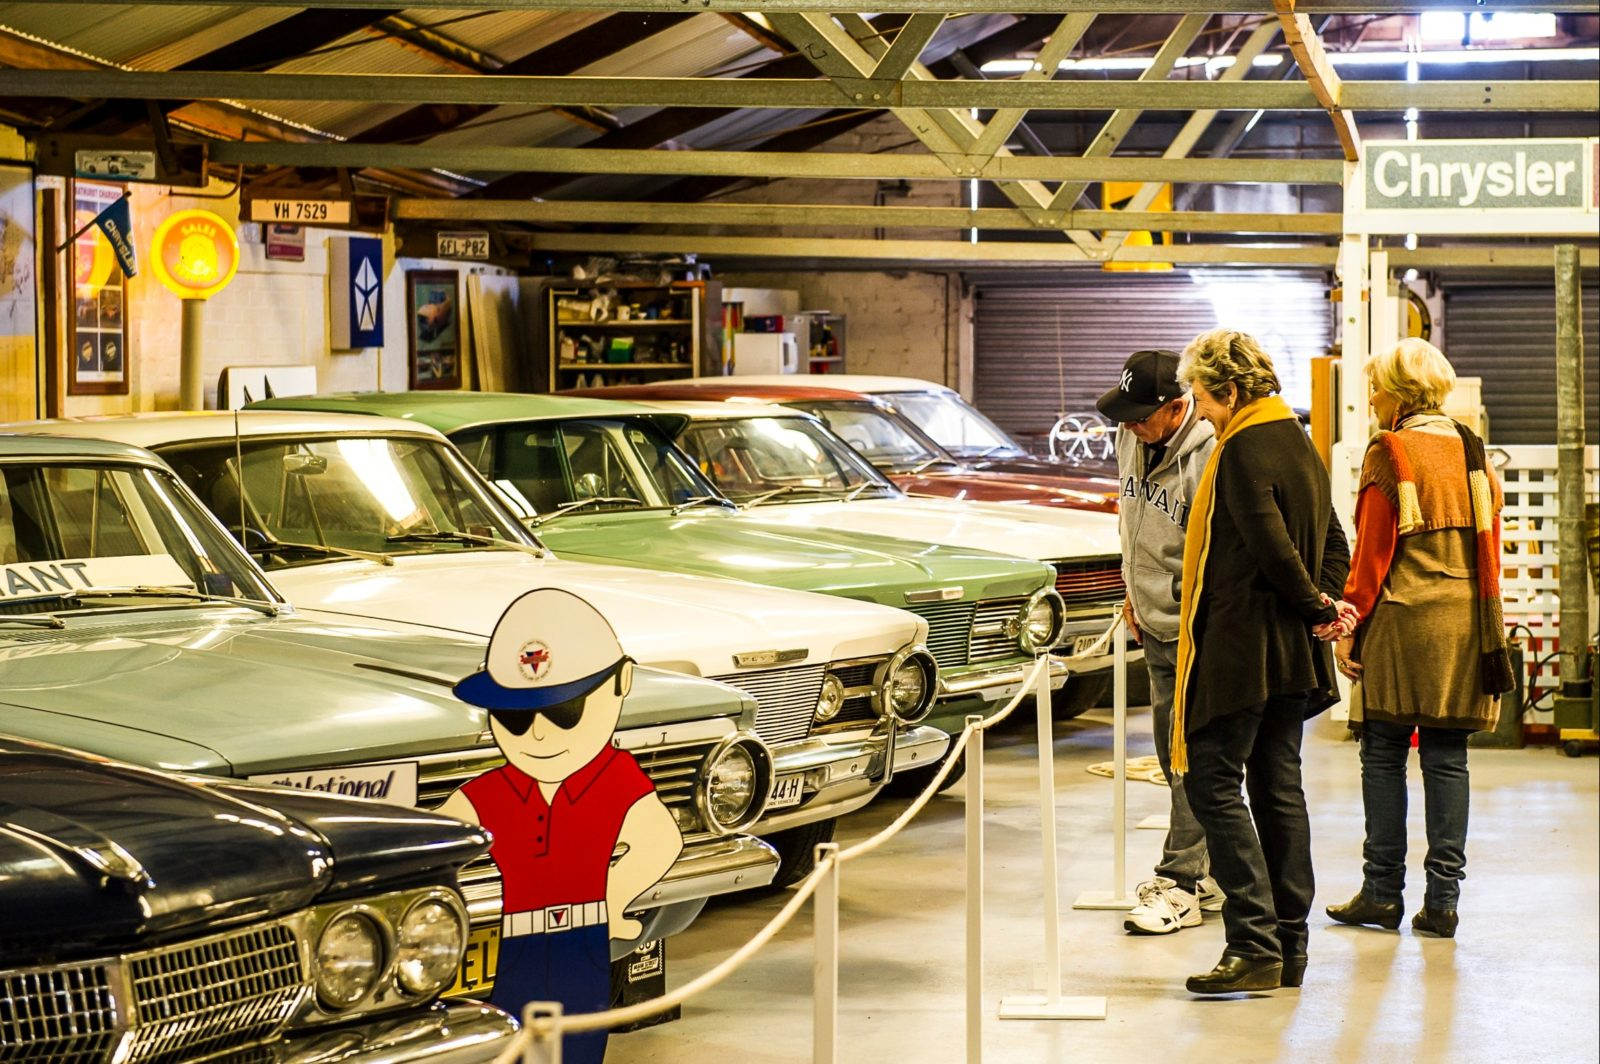 The Chrysler Car Museum in Grenfell NSW